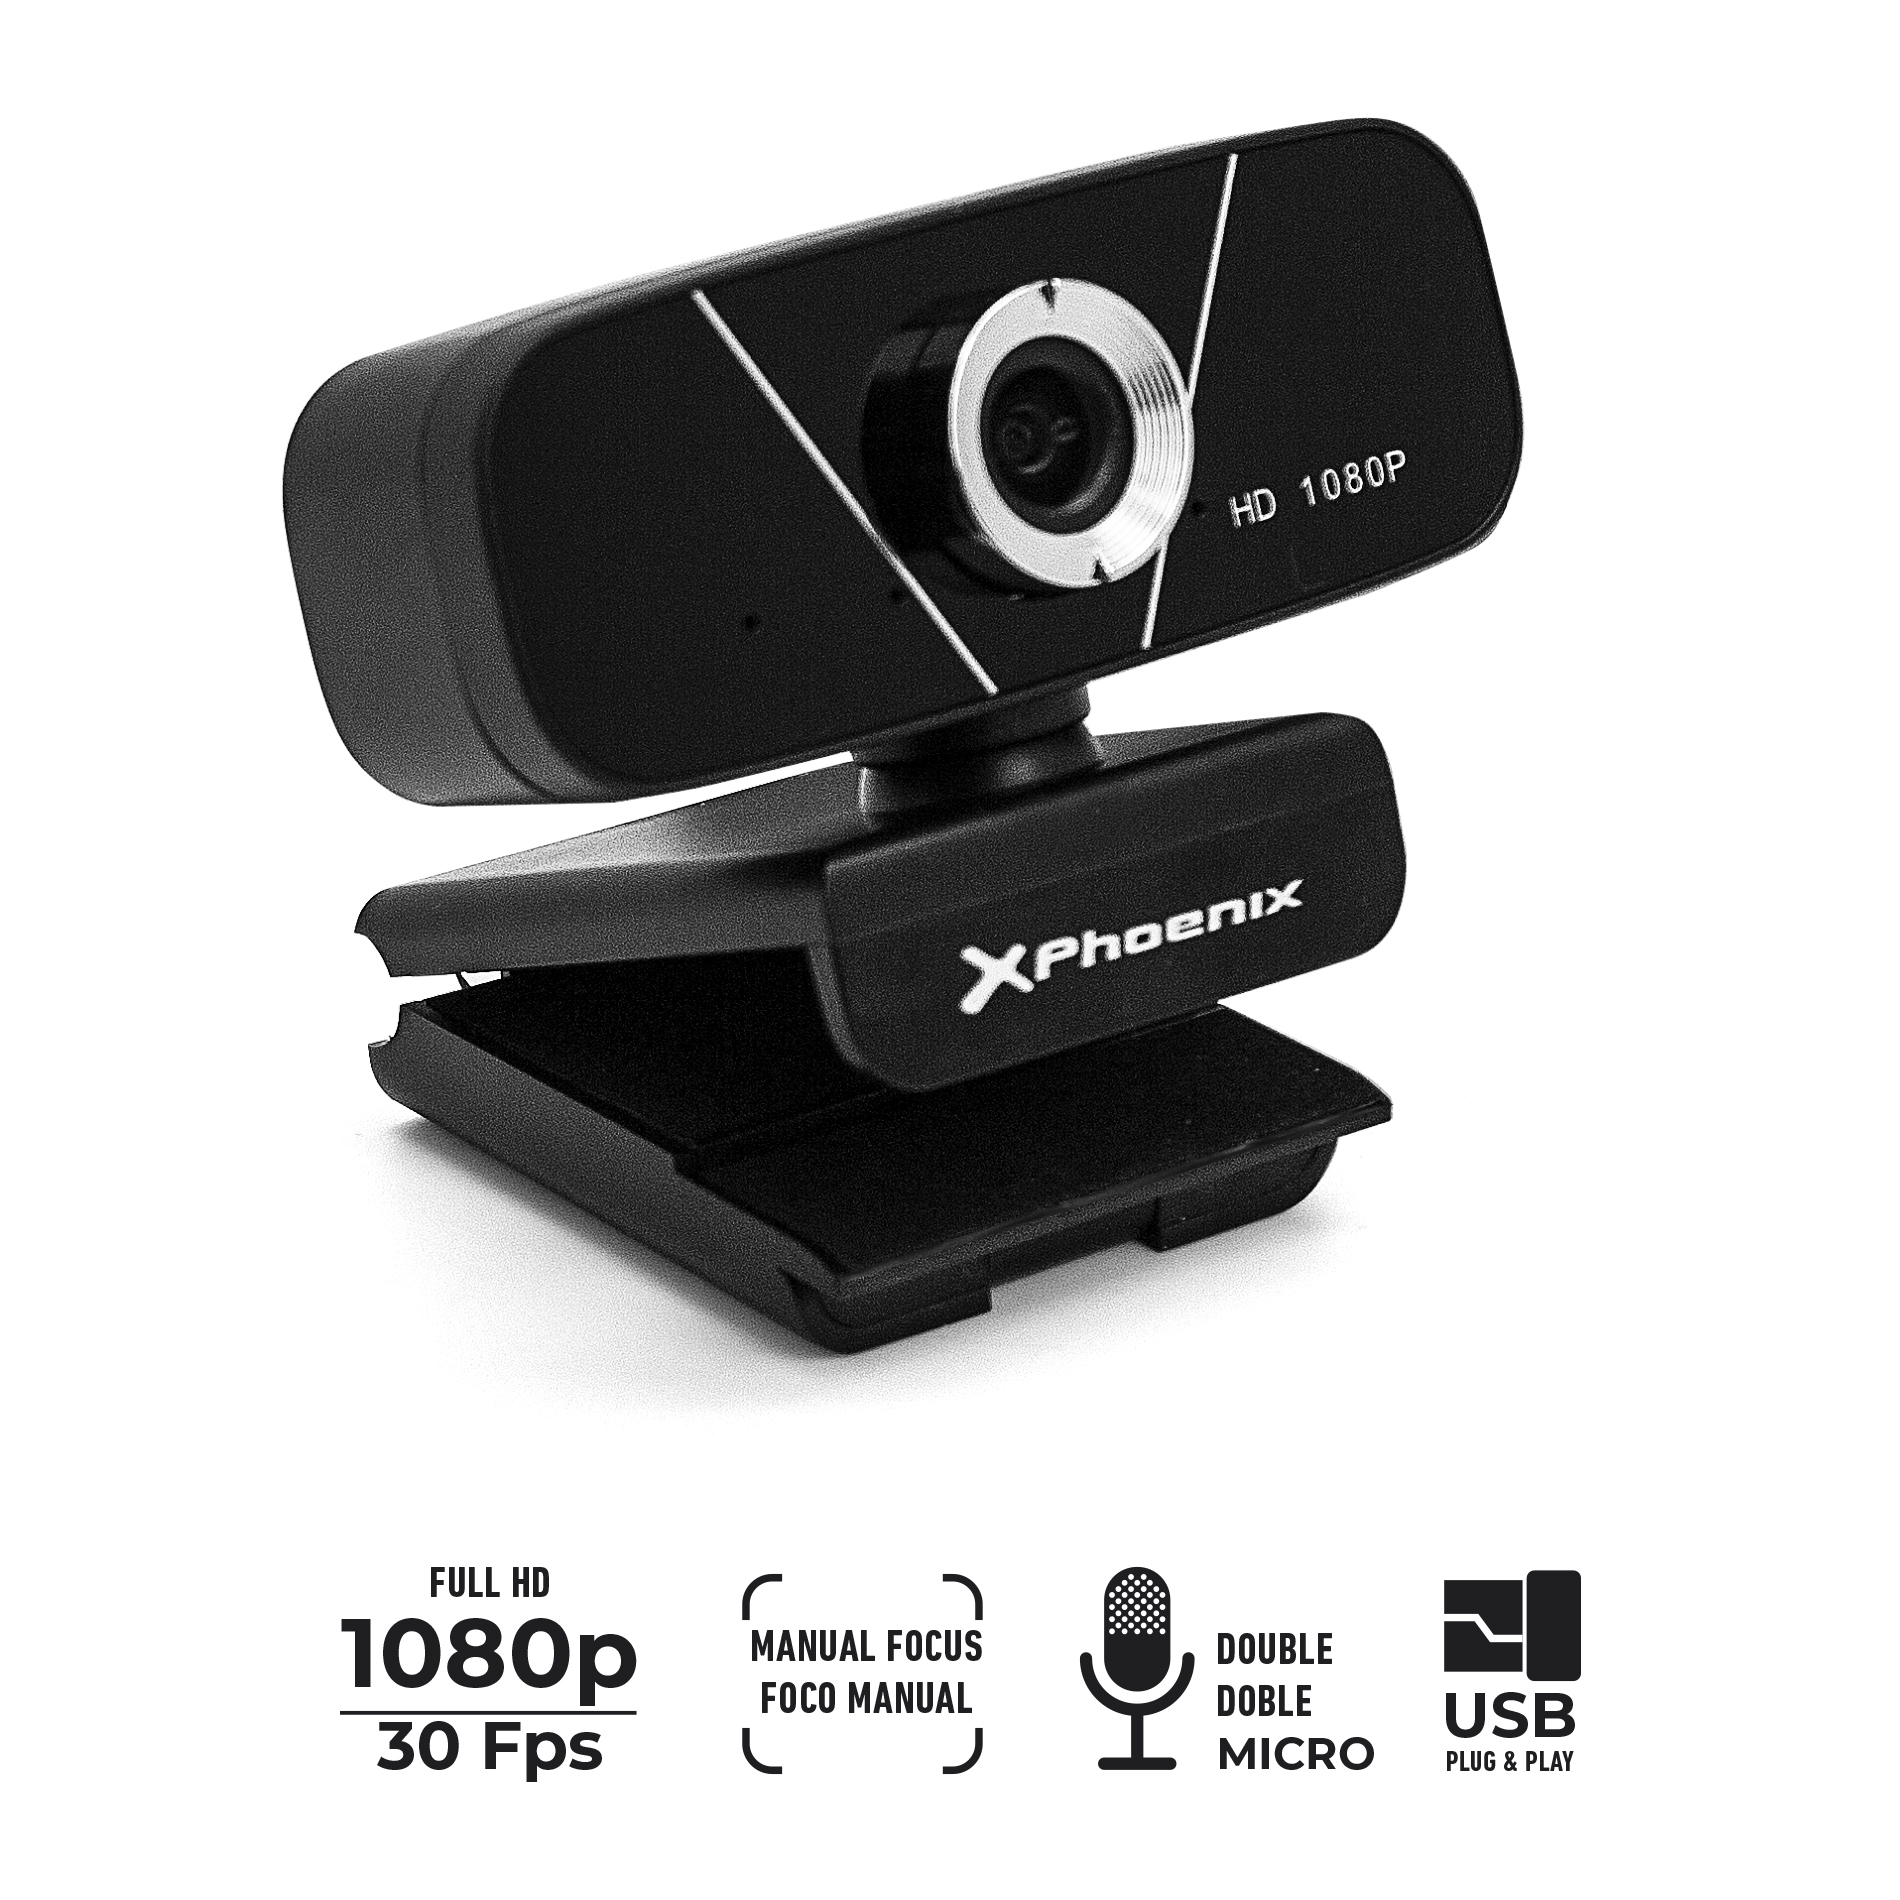 WEBCAM CAMARA WEB USB PHOENIX GOLIVE FULL HD 1920X1080 30FPS ENFOQUE MANUAL ROTATIVA 360º DOBLE MICROFONO BASE LISTA PARA TRIPODE